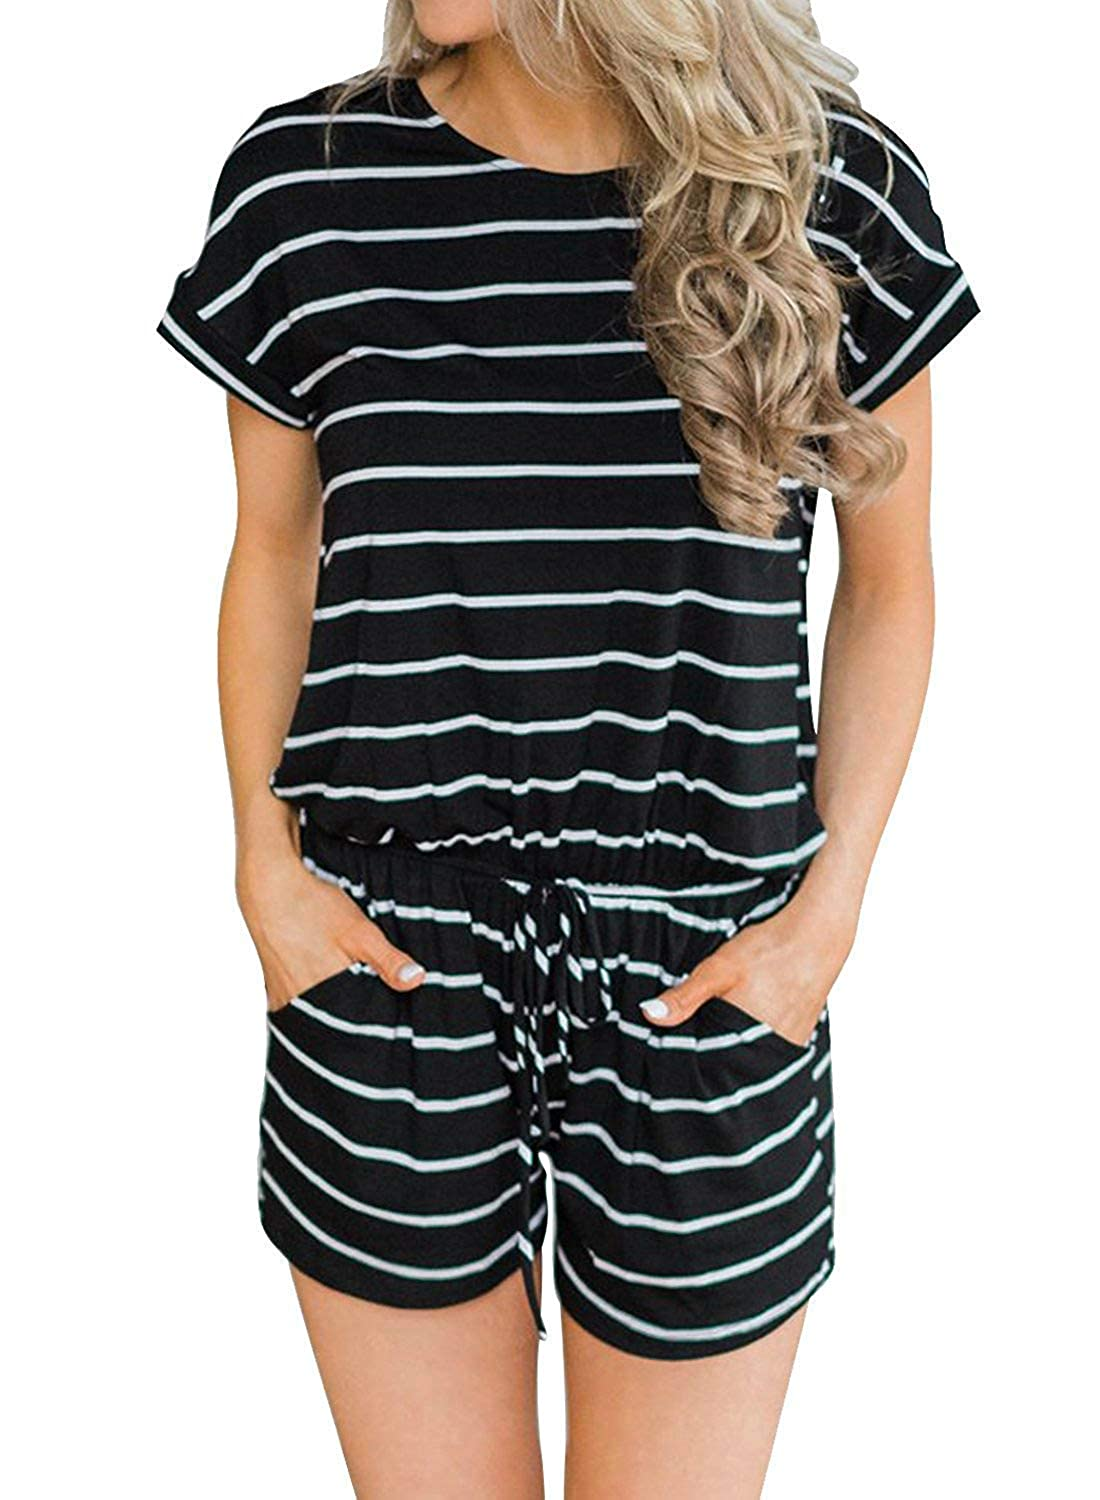 01black Striped Artfish Women's Summer Striped Jumpsuit Casual Loose Short Sleeve Jumpsuit Rompers